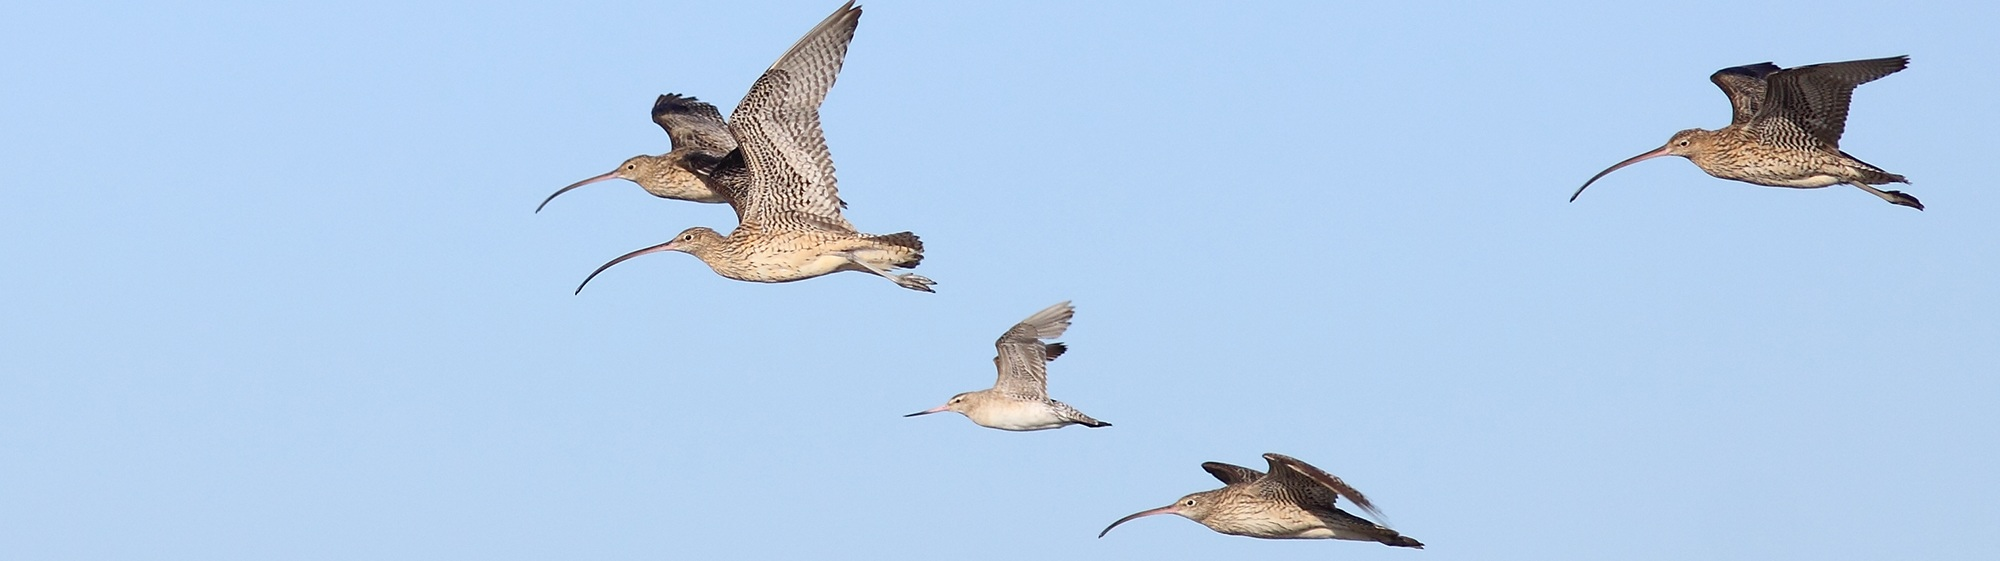 Eastern+Curlew_AS+-+to+edit+for+web.jpg